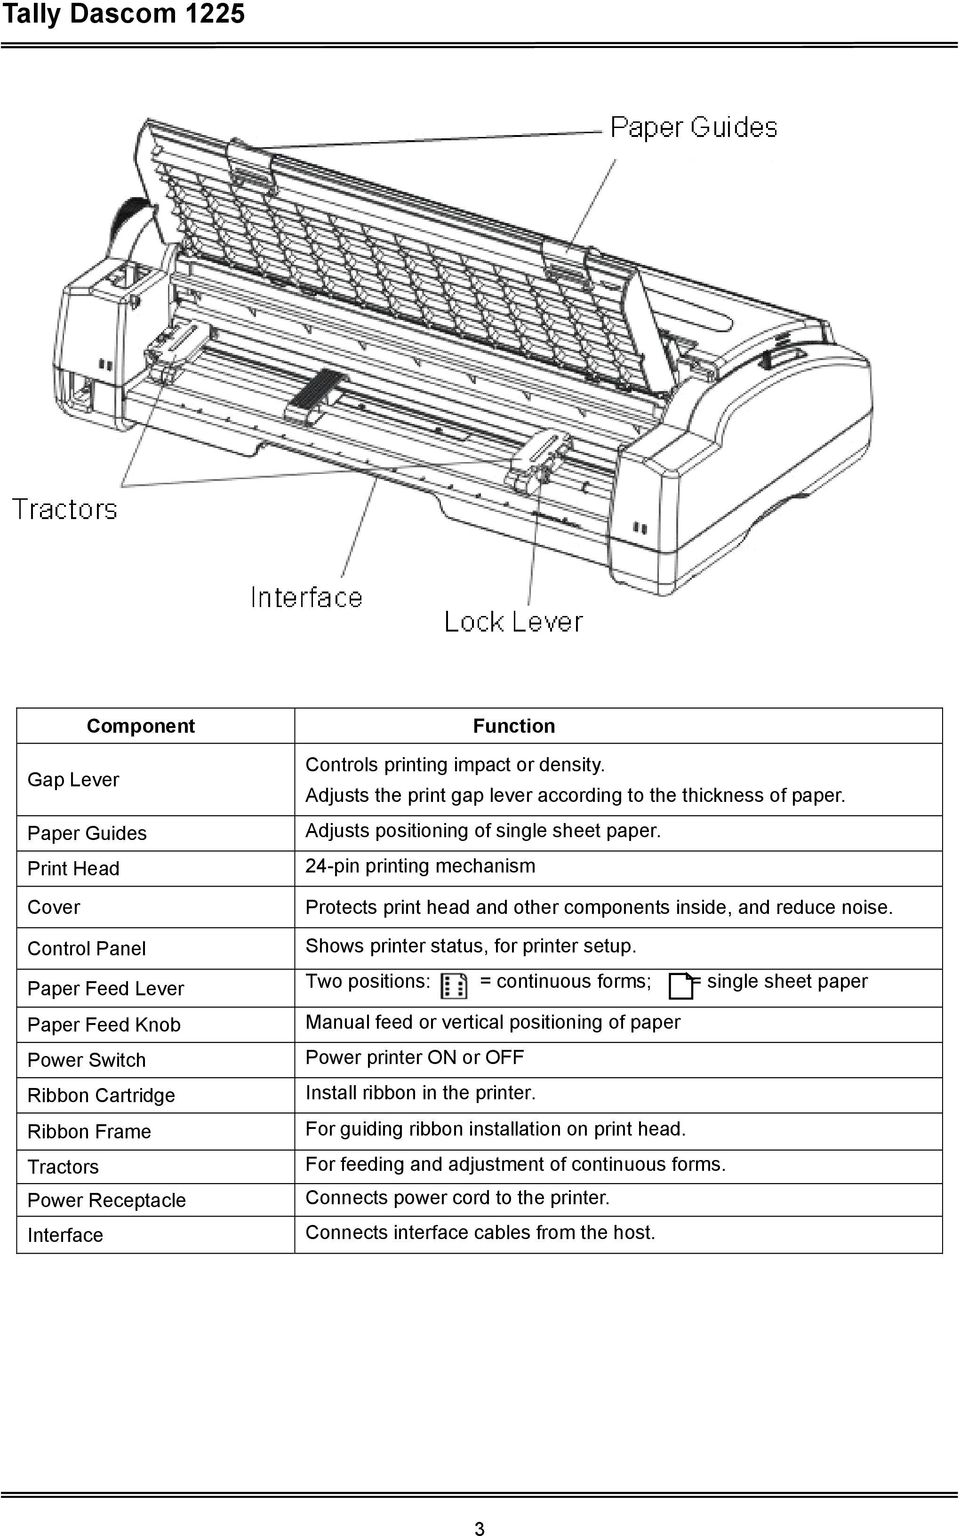 Paper Feed Lever Two positions: = continuous forms; = single sheet paper Paper Feed Knob Manual feed or vertical positioning of paper Power Switch Power printer ON or OFF Ribbon Cartridge Install